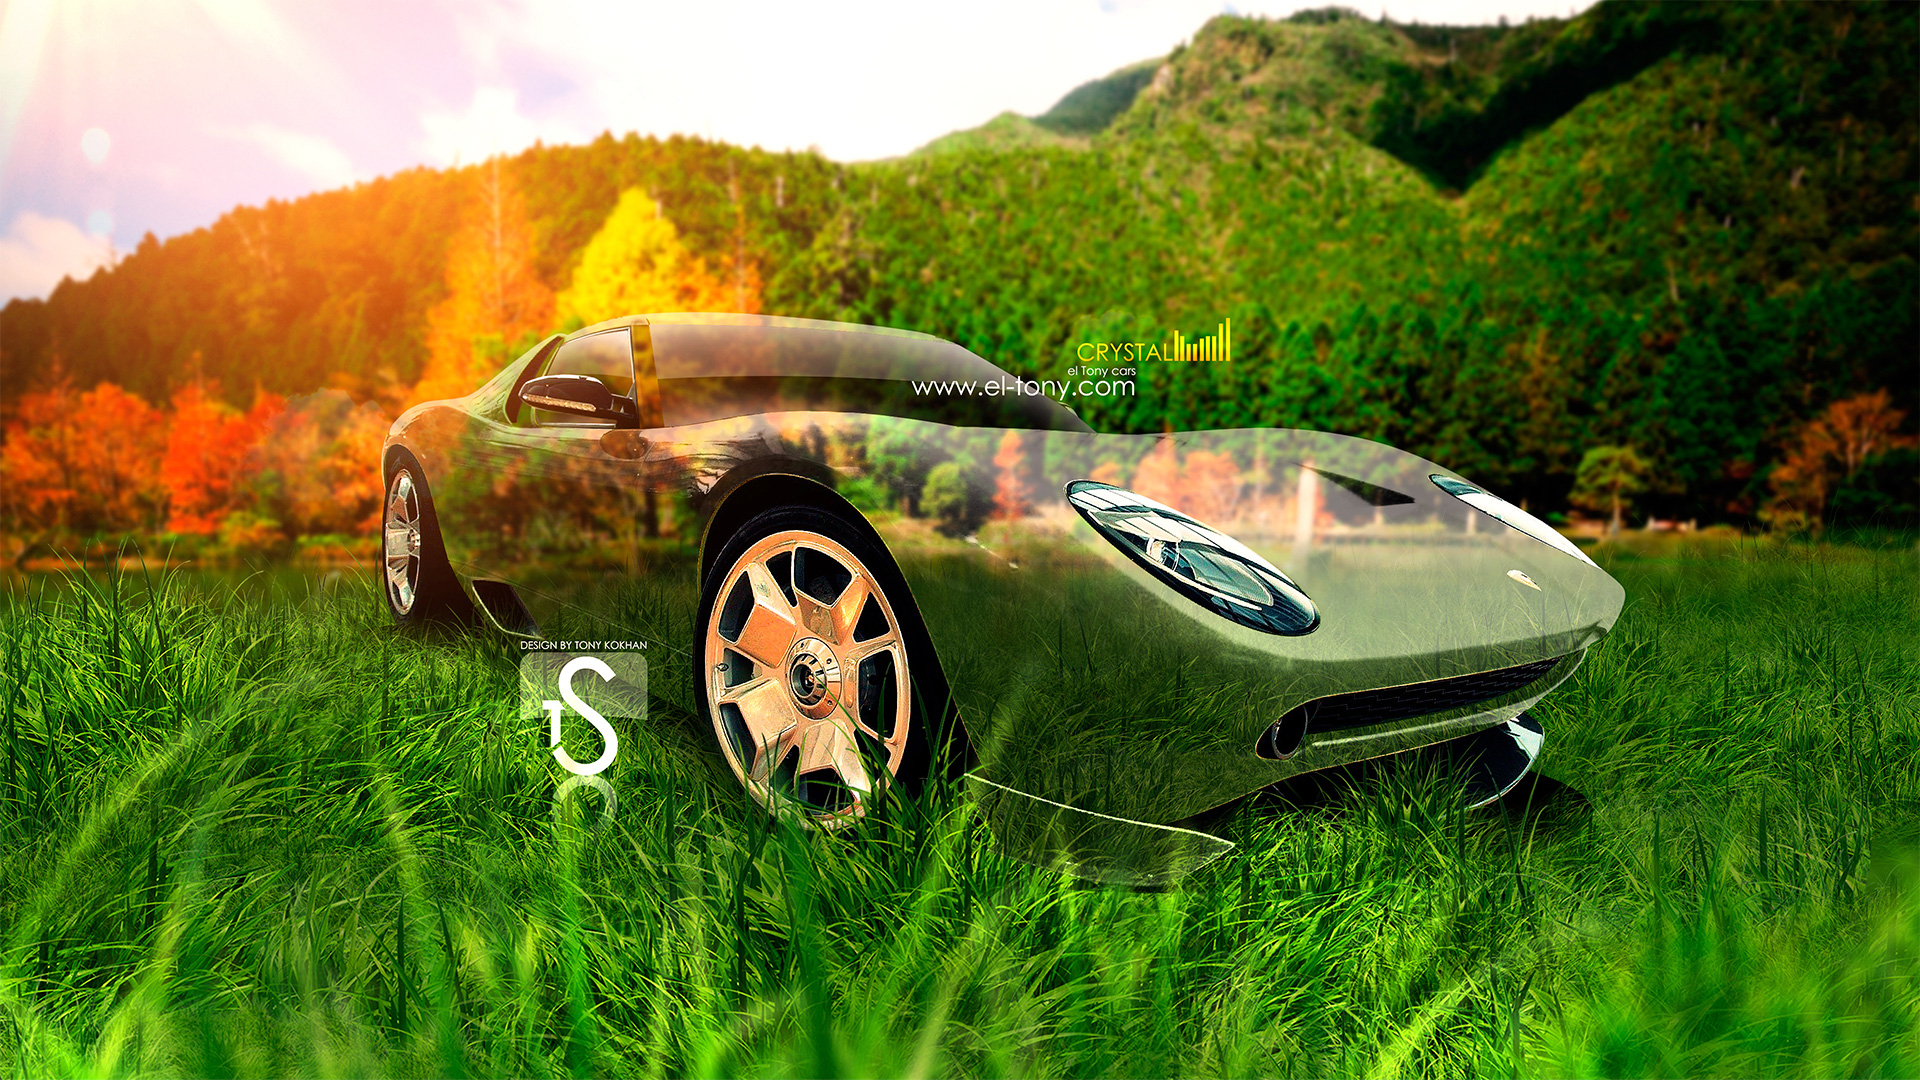 Superieur Lamborghini Miura Crystal Nature Car 2013 HD Wallpapers